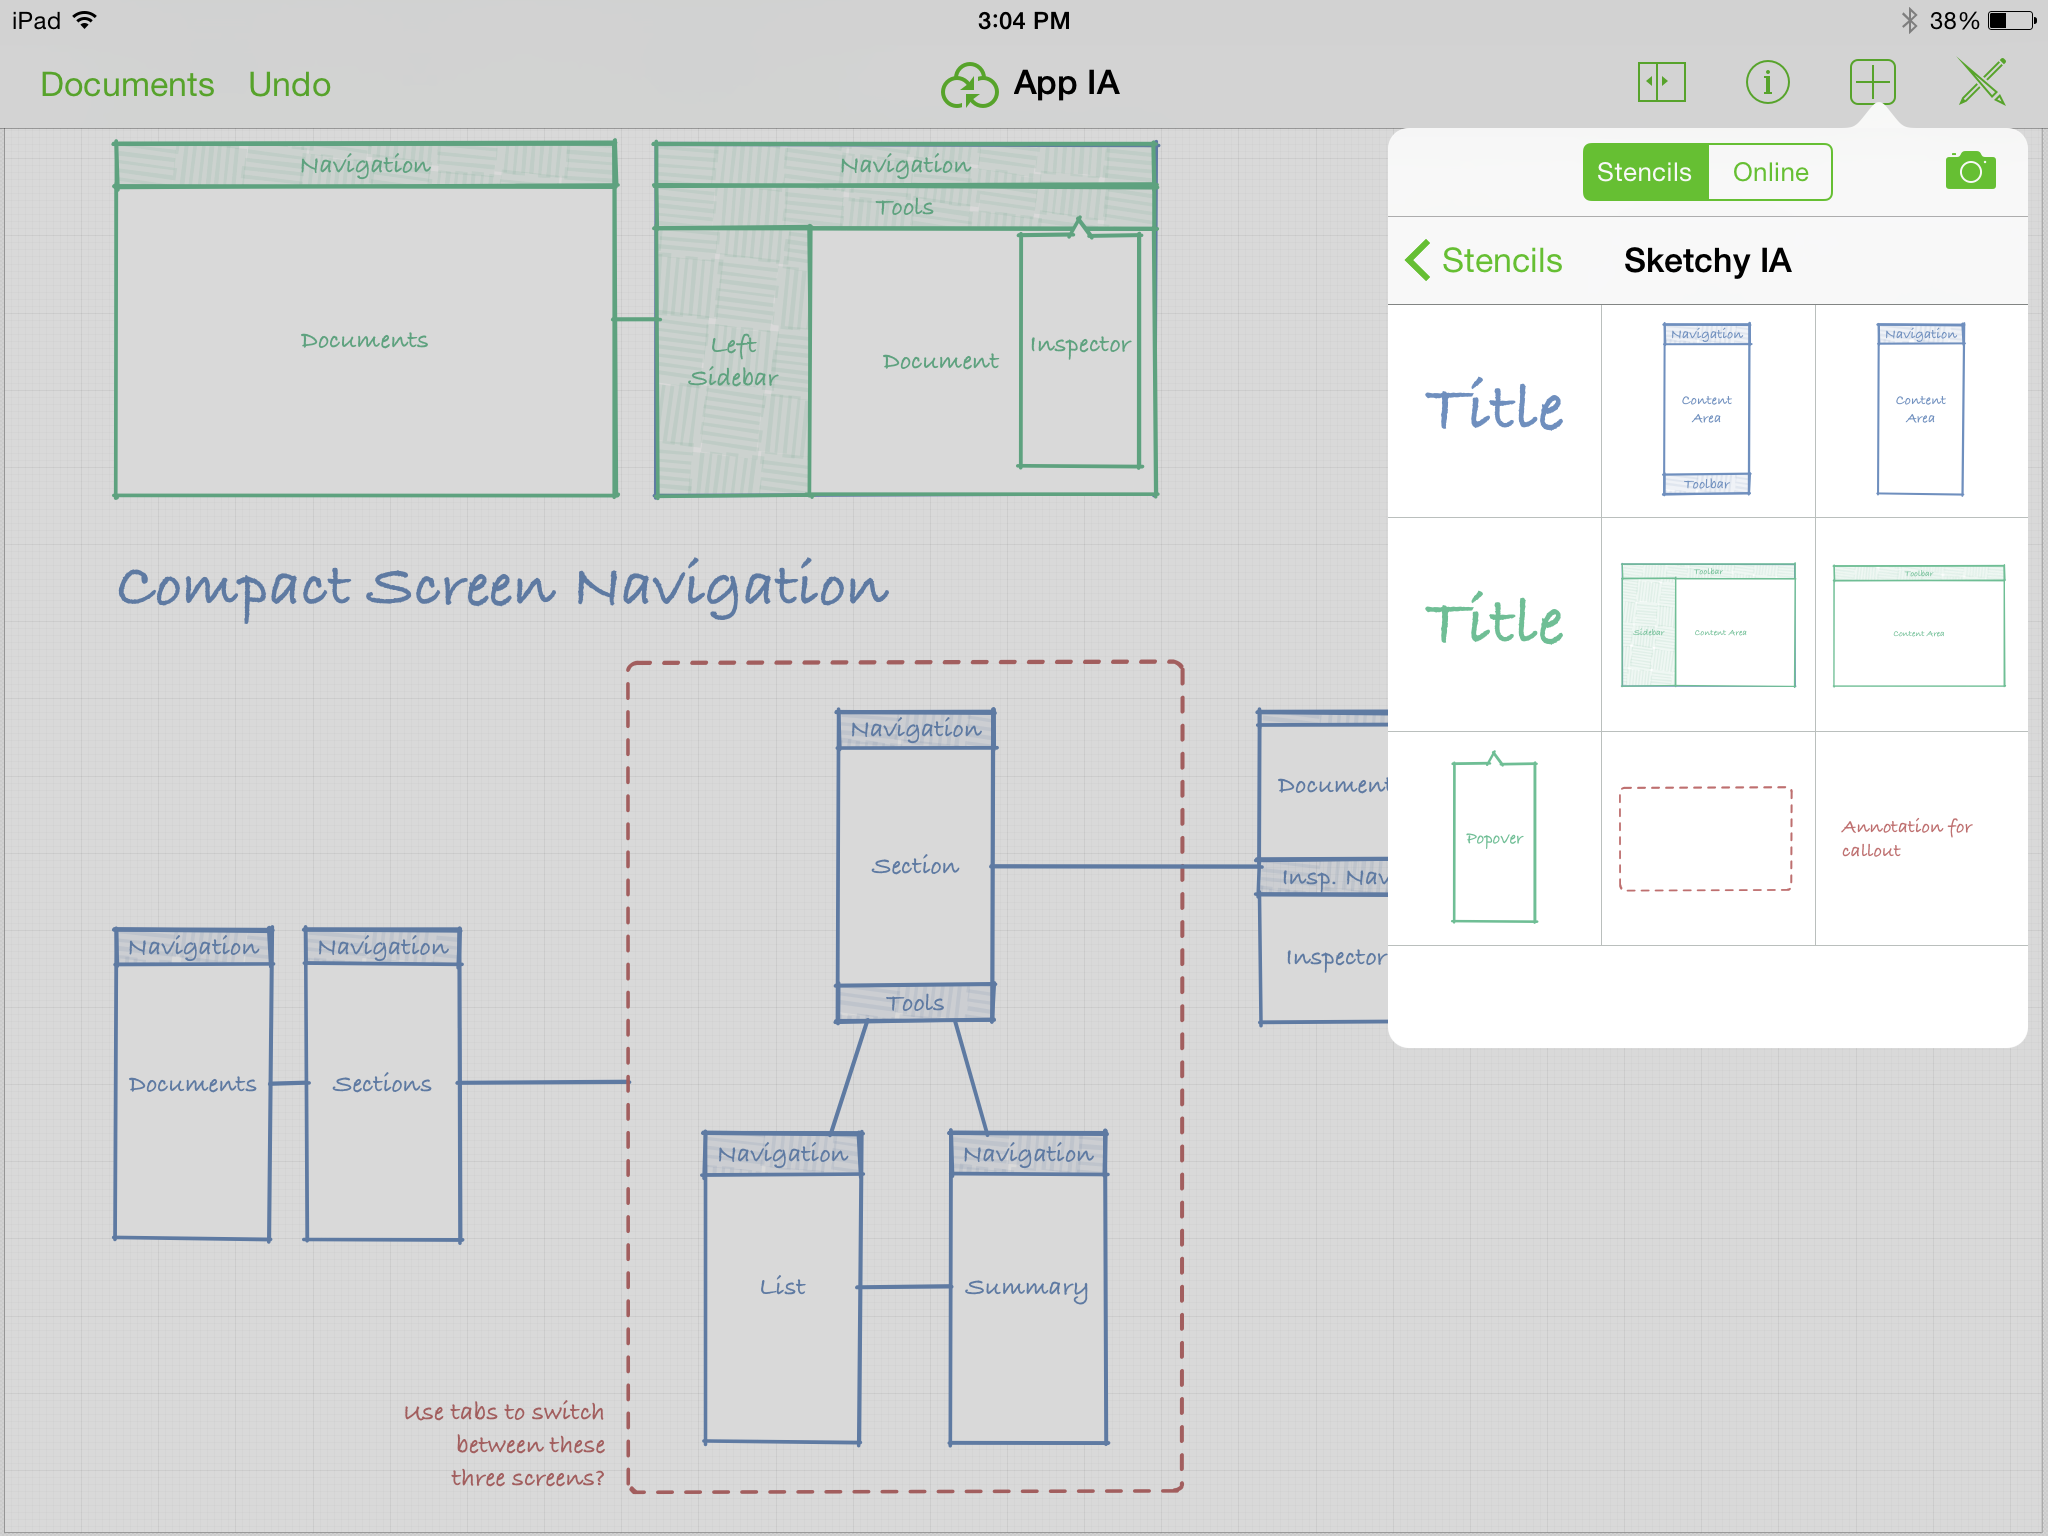 Introducing omnigraffle 2 for ipad the omni group screenshot of app ia document with stencils ccuart Image collections